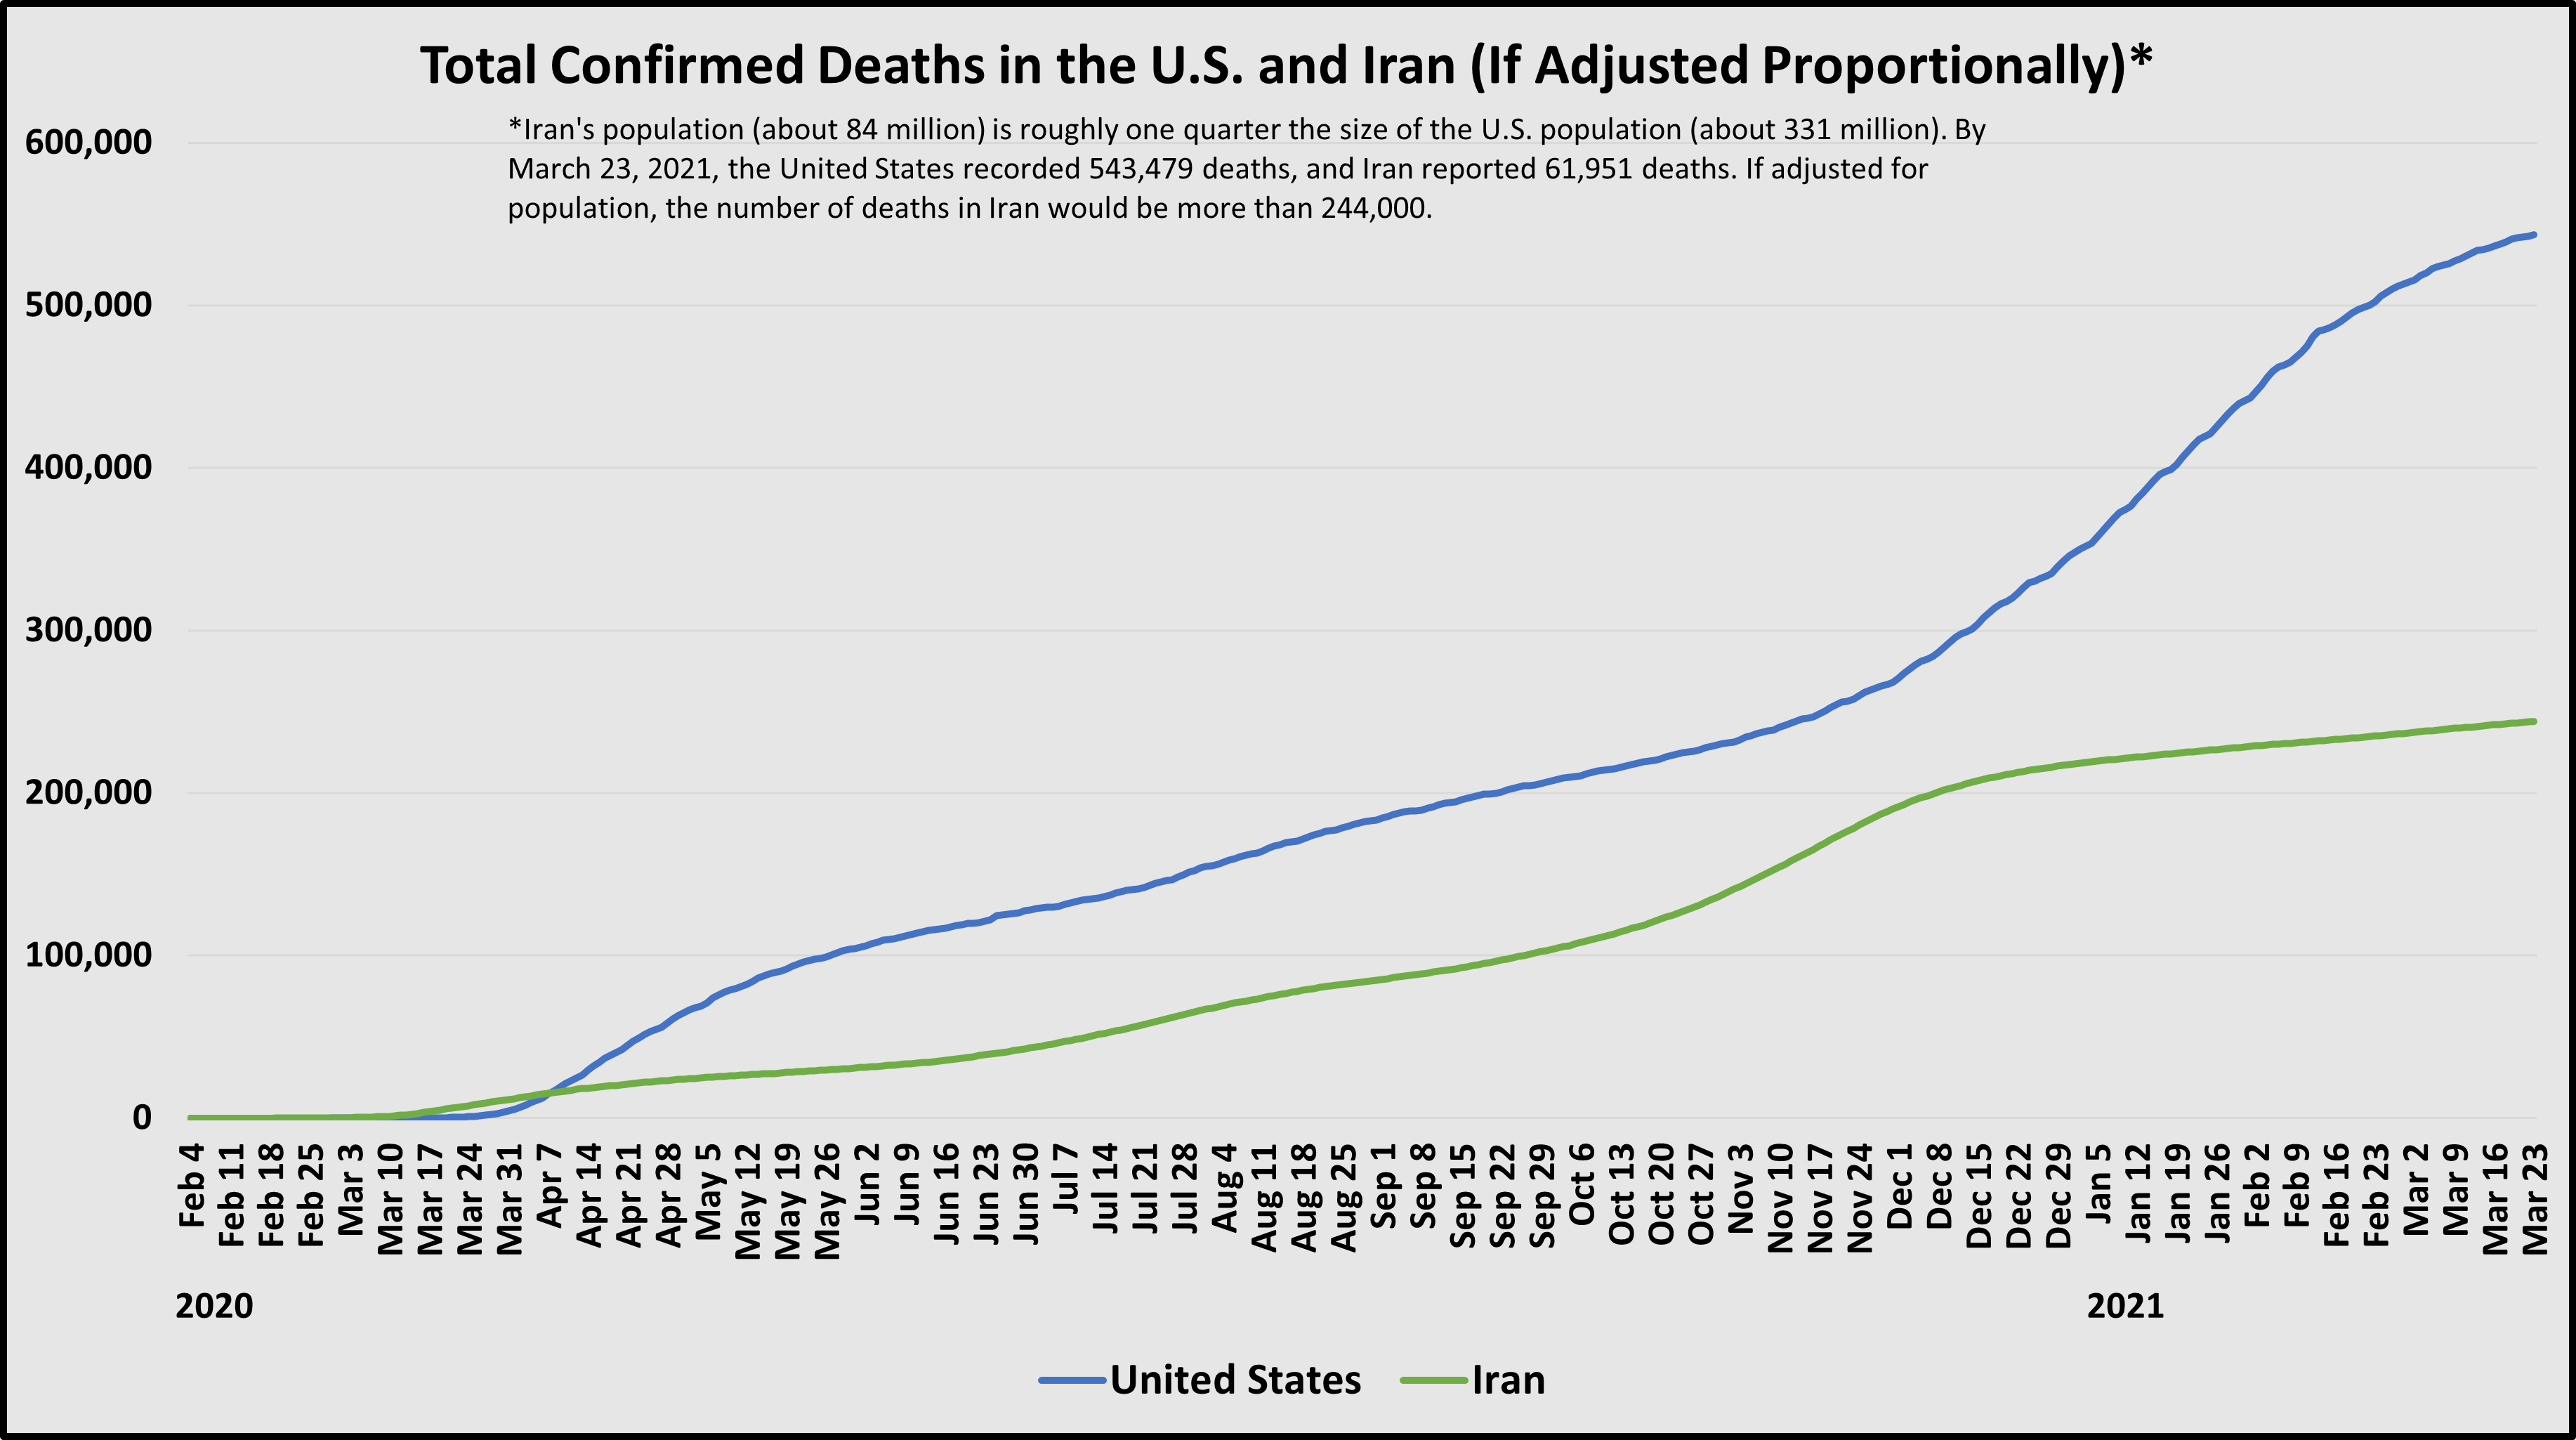 A chart showing total deaths adjusted proportionality